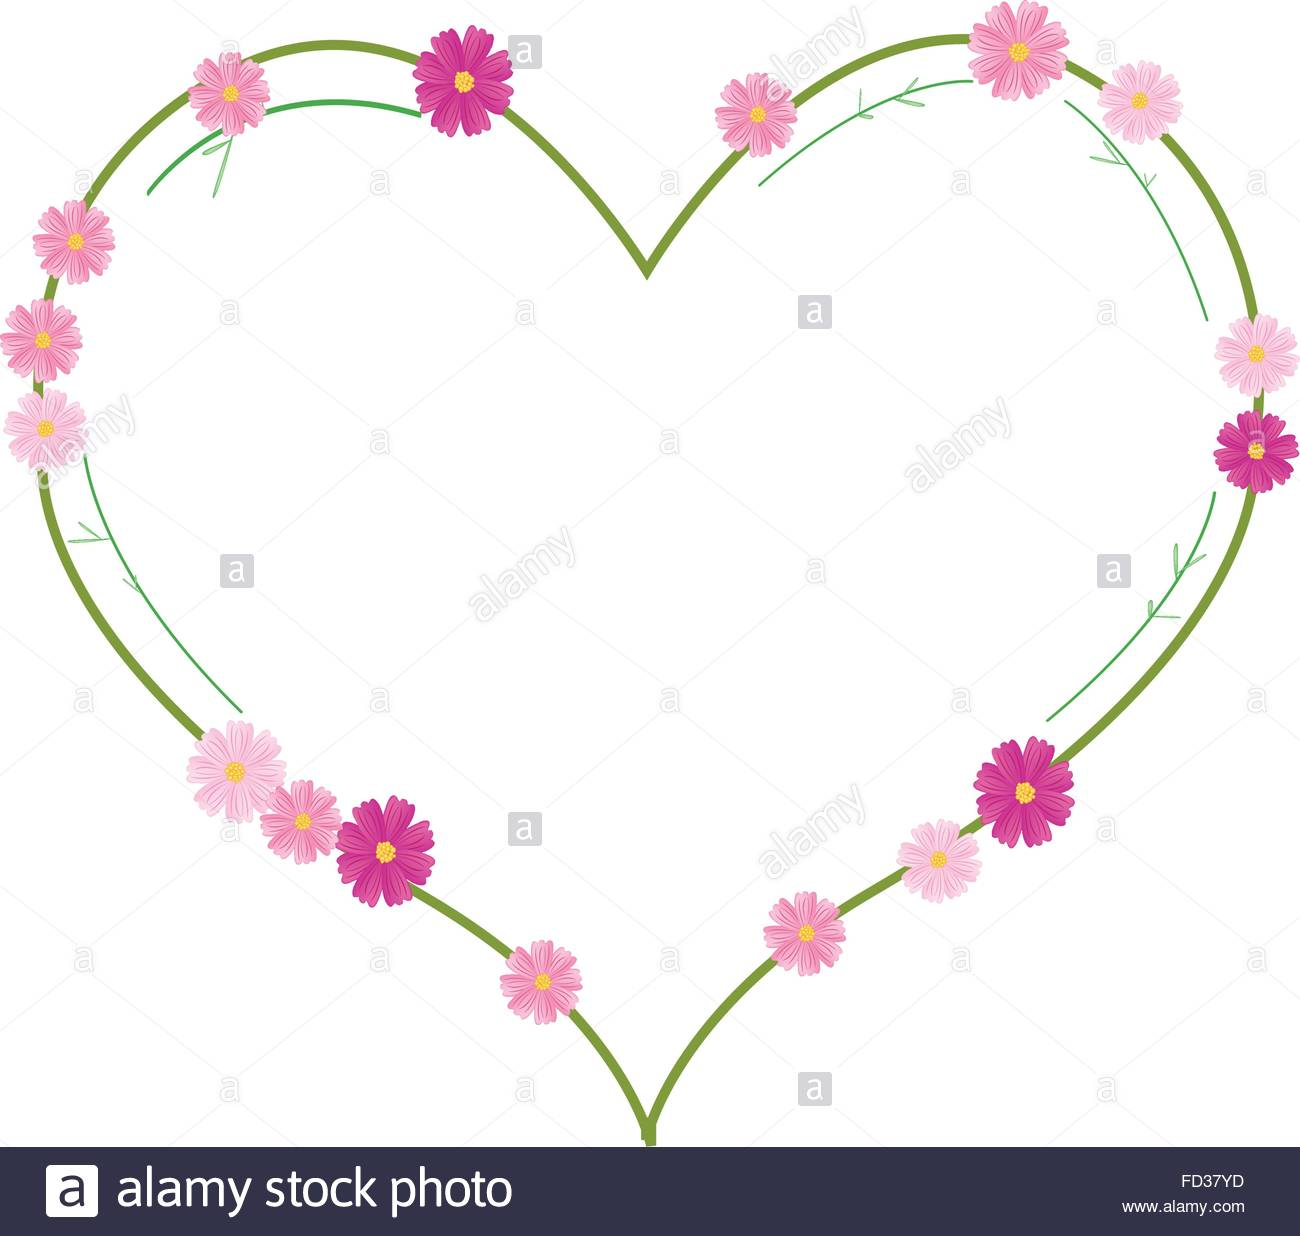 Love Concept, Illustration Of Pink Cosmos Flowers Or Cosmos Stock.